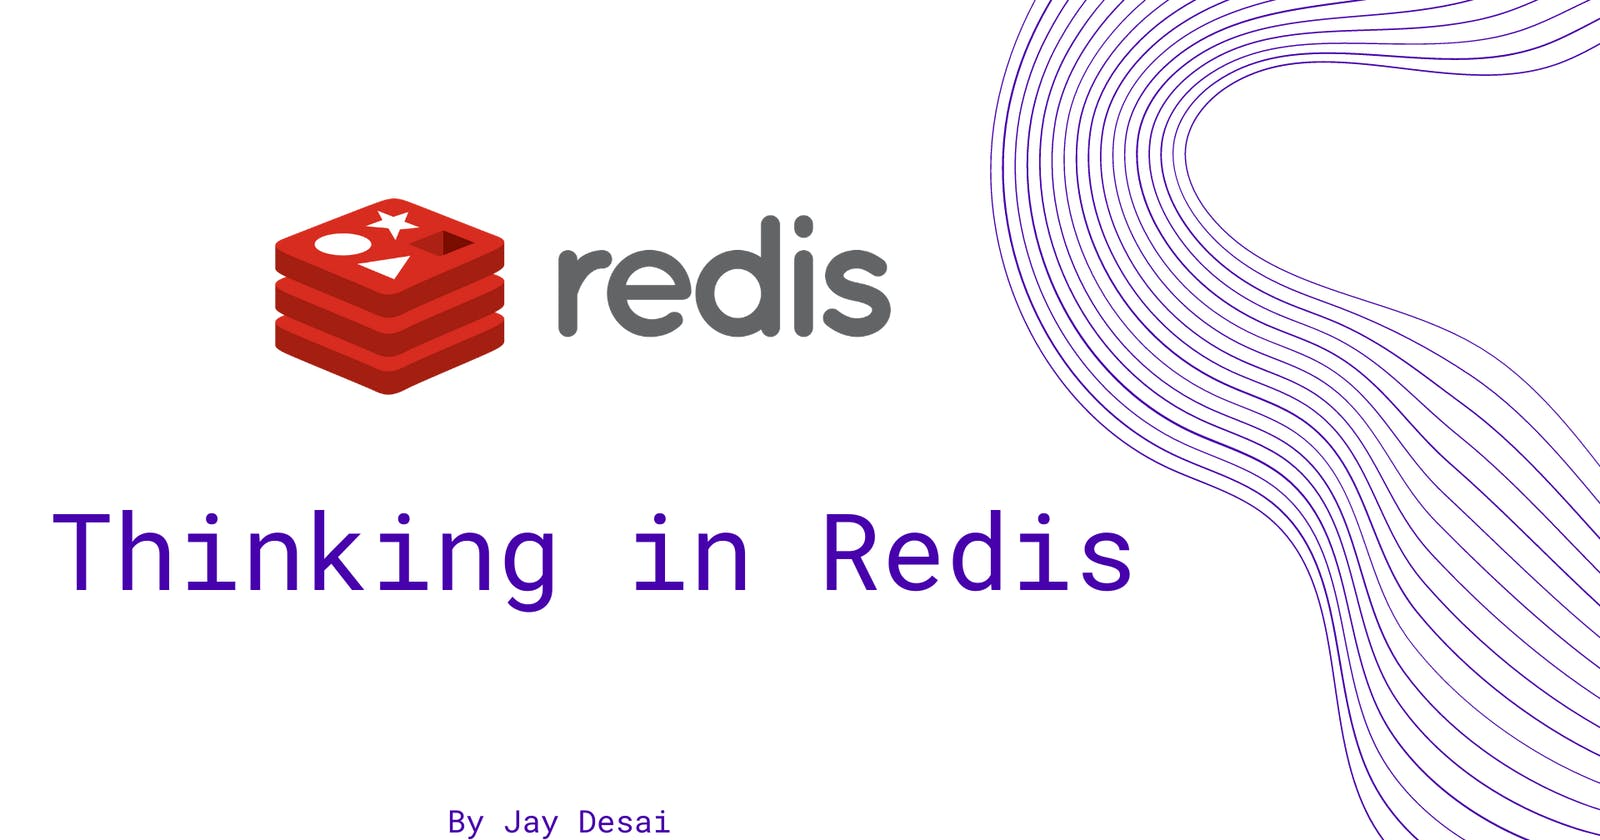 Thinking in Redis: A Quick Introduction